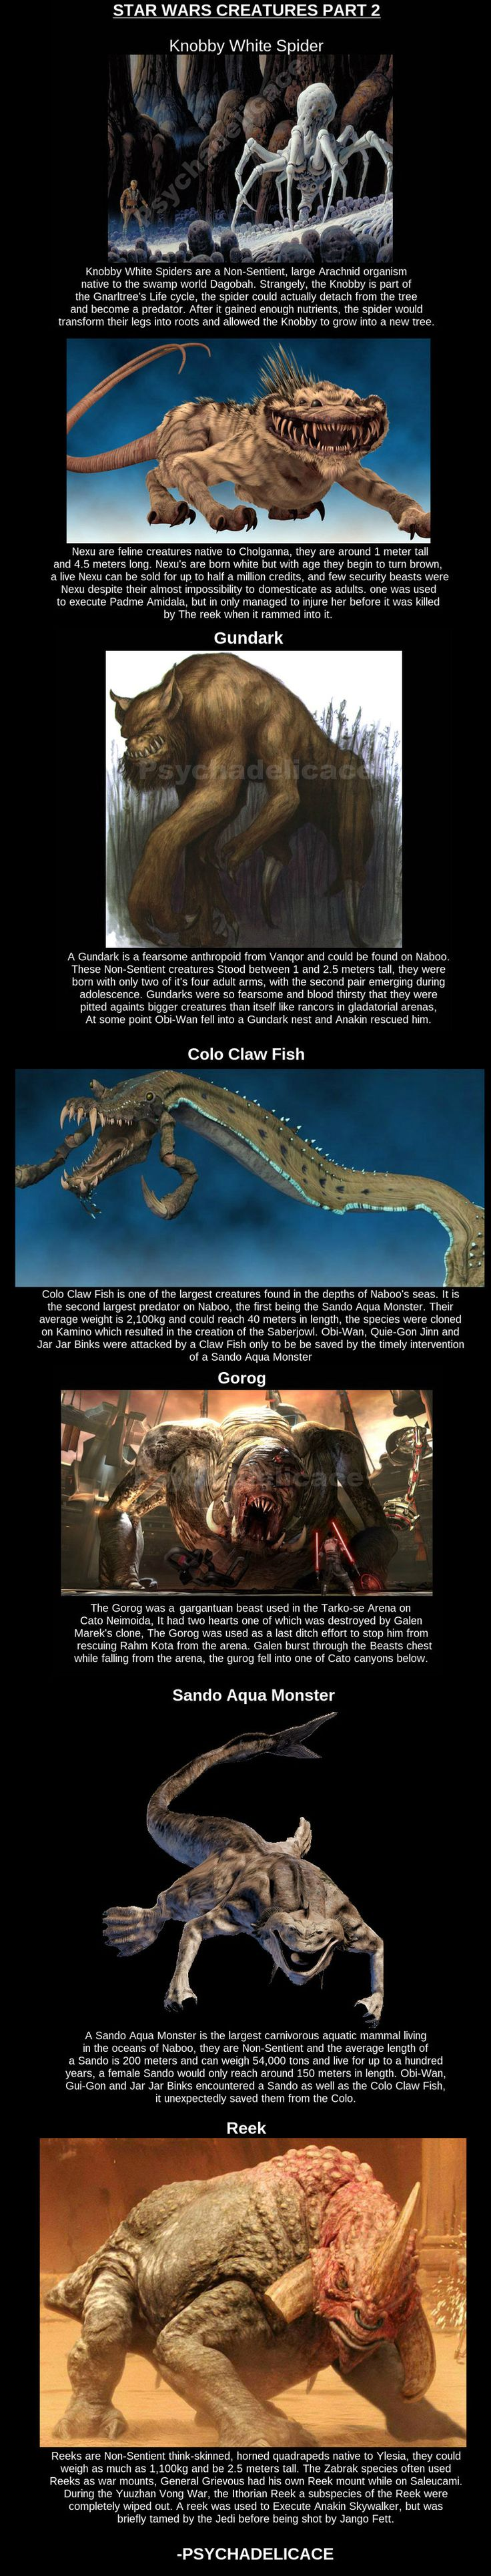 Star Wars Creatures part 2 // funny pictures - funny photos - funny images - funny pics - funny quotes - #lol #humor #funnypictures